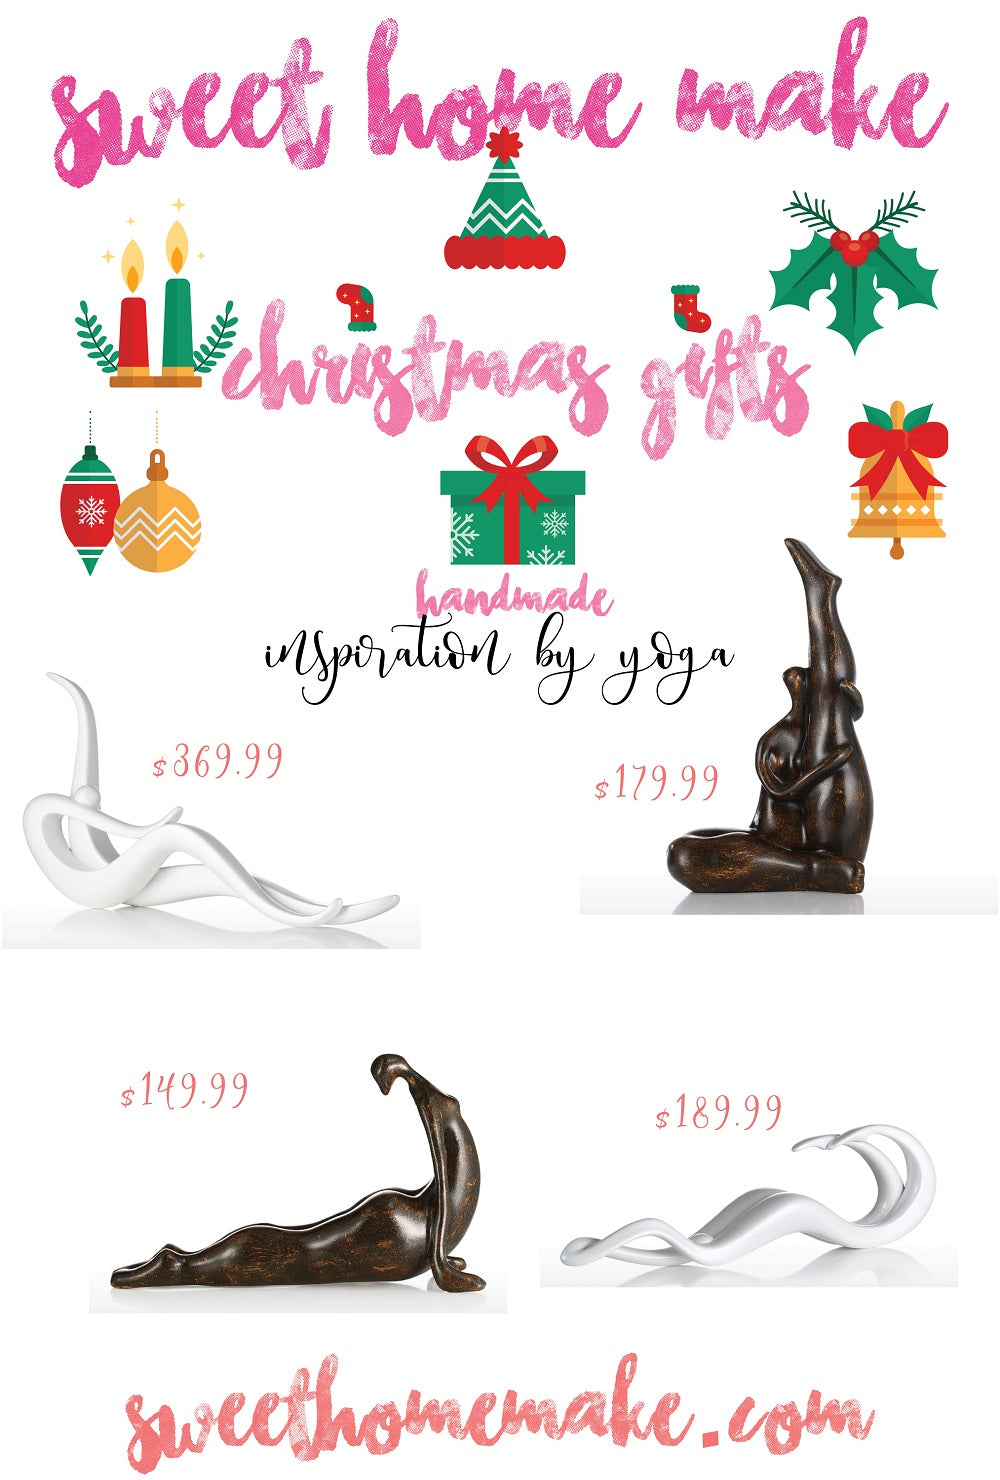 Gifts for Women with Christmas Gifts inspiration Yoga